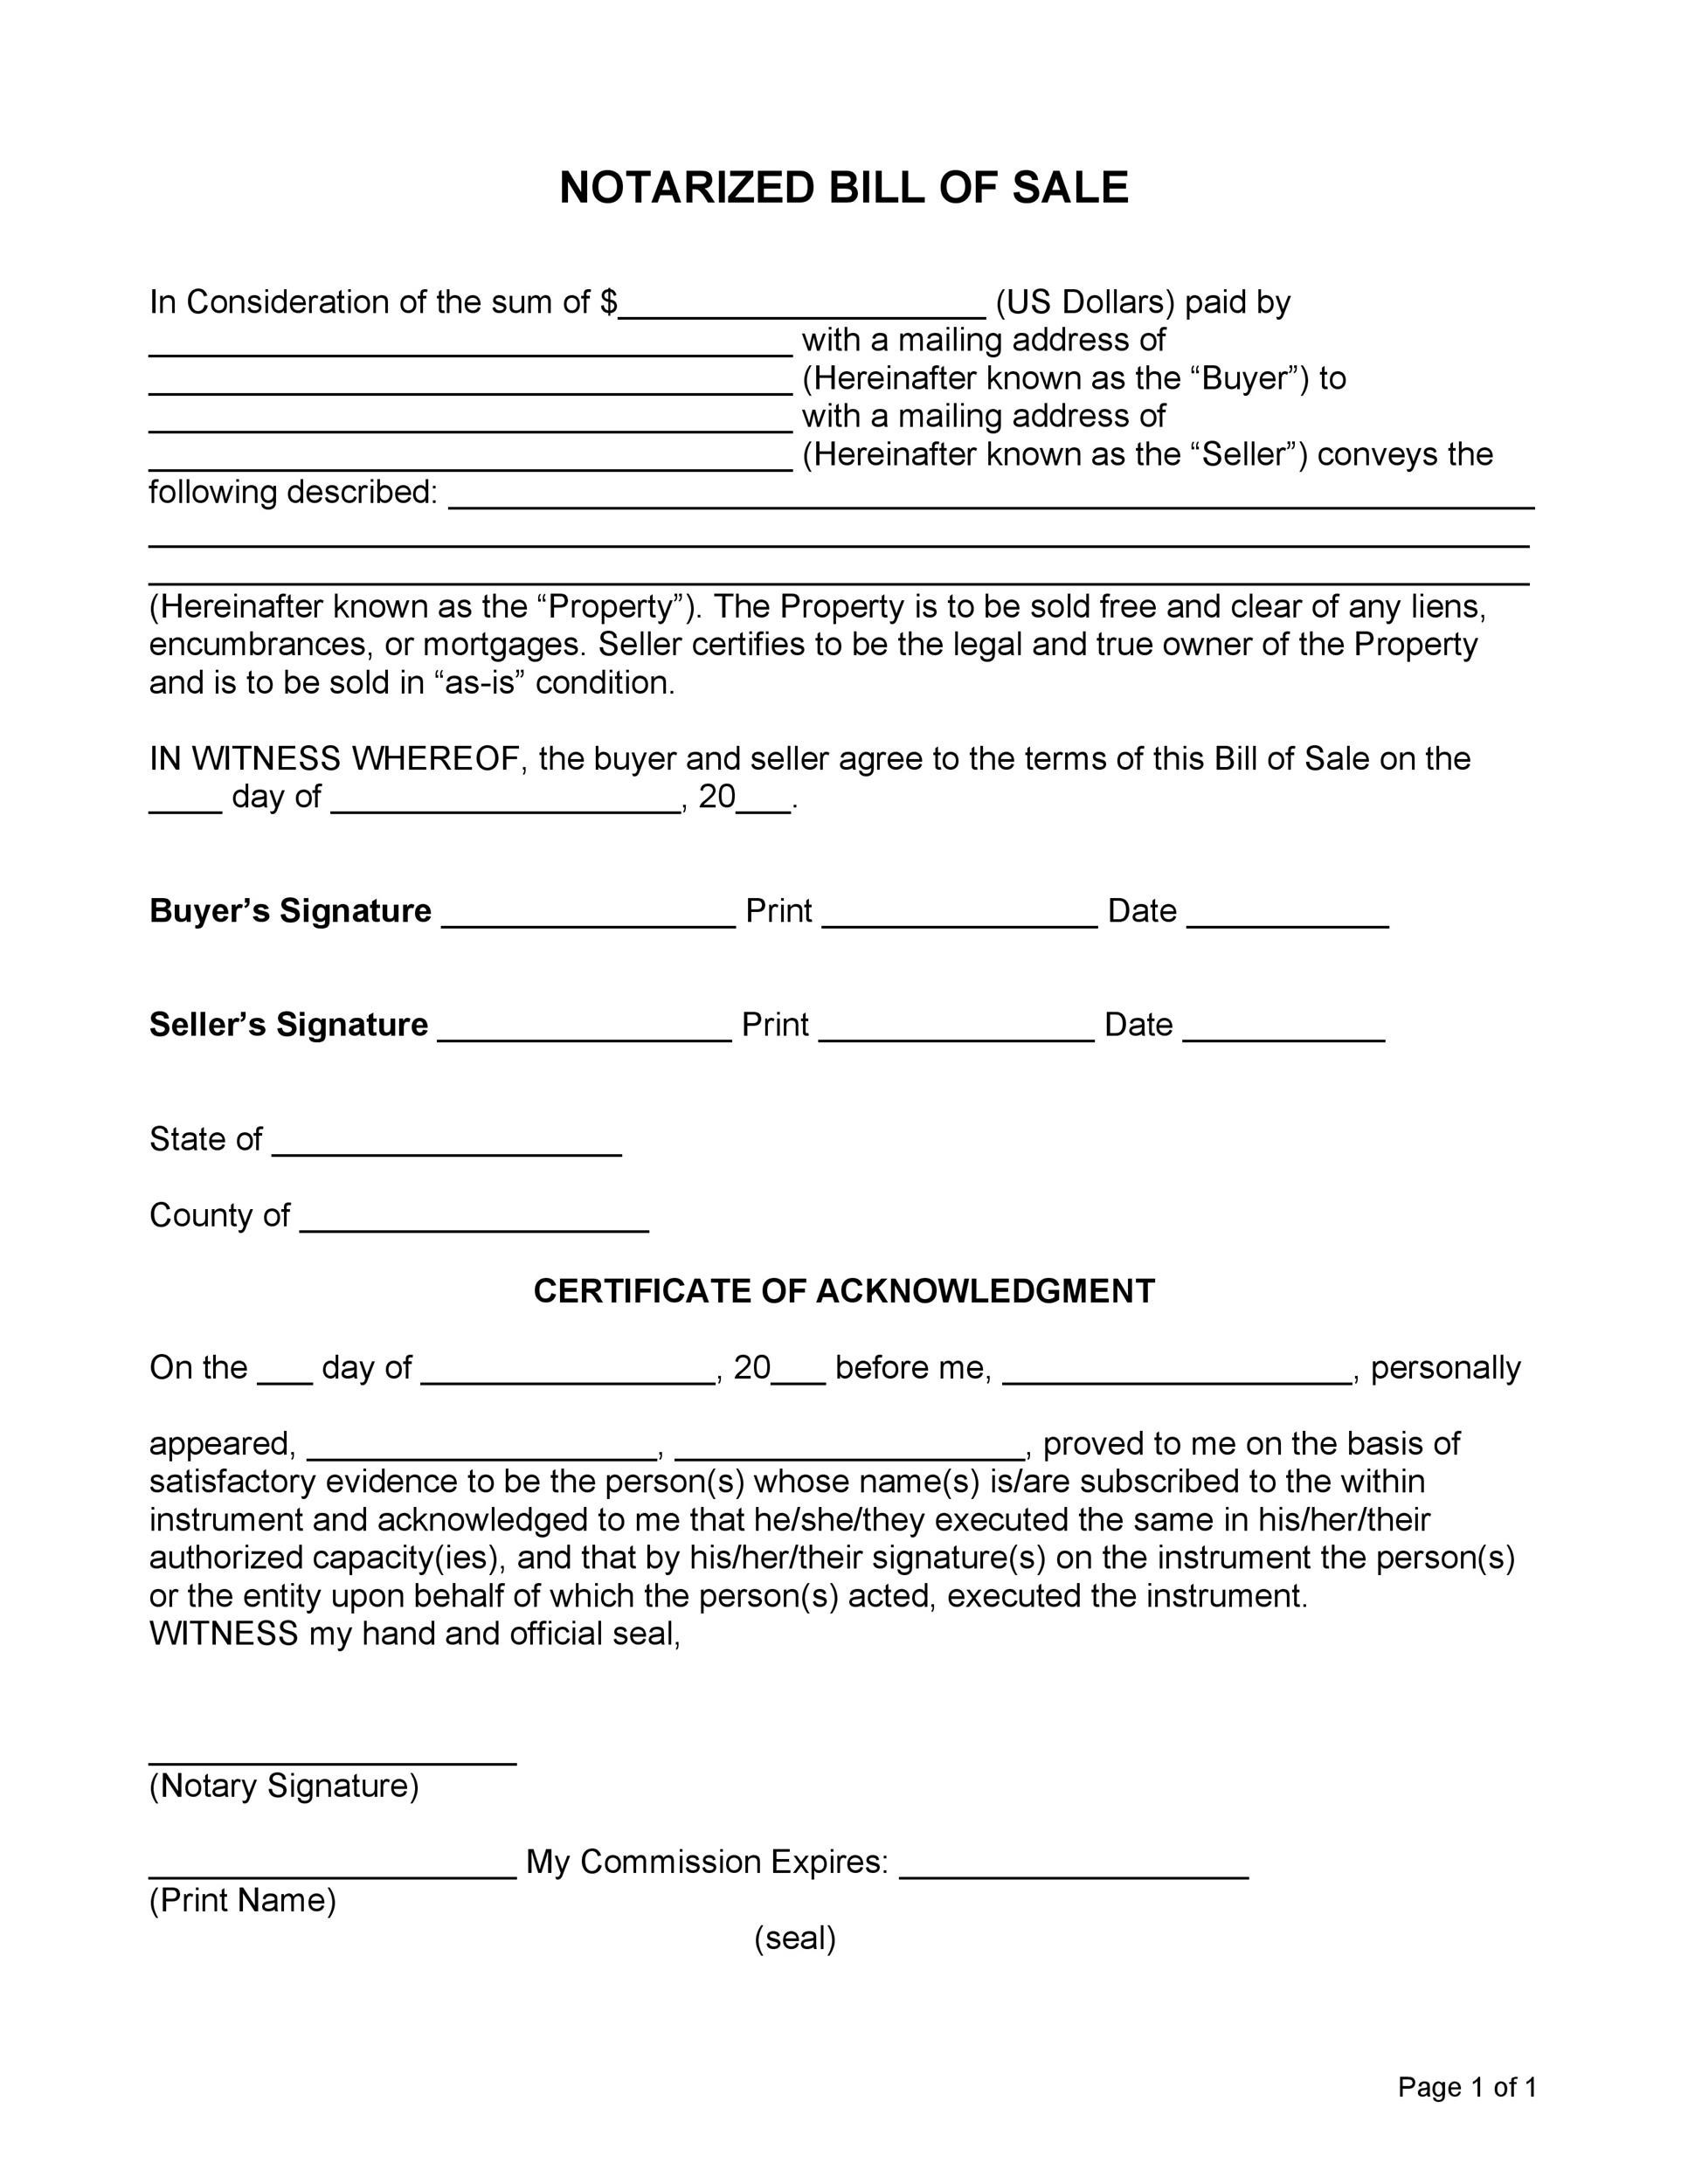 Free notary acknowledgement 28